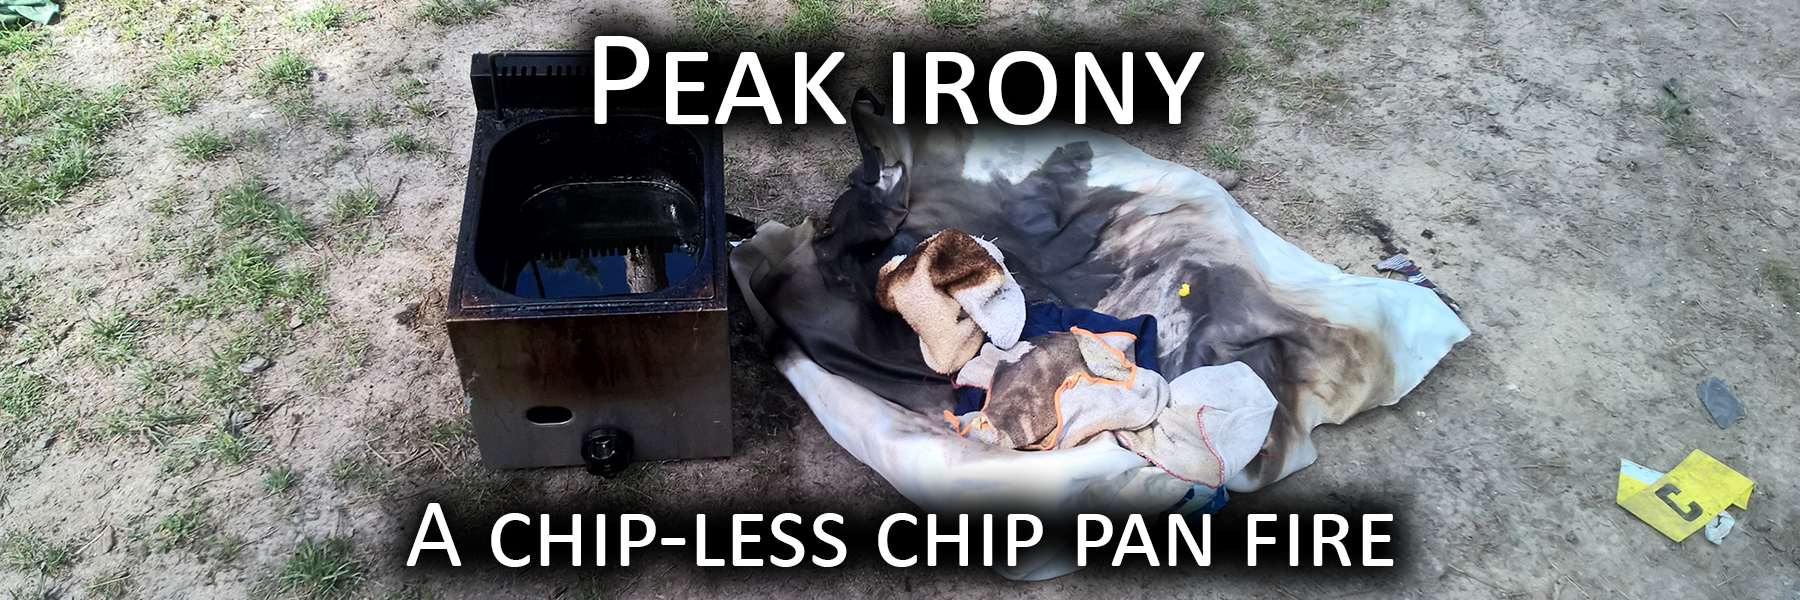 Peak Irony - A chip-less chip pan fire